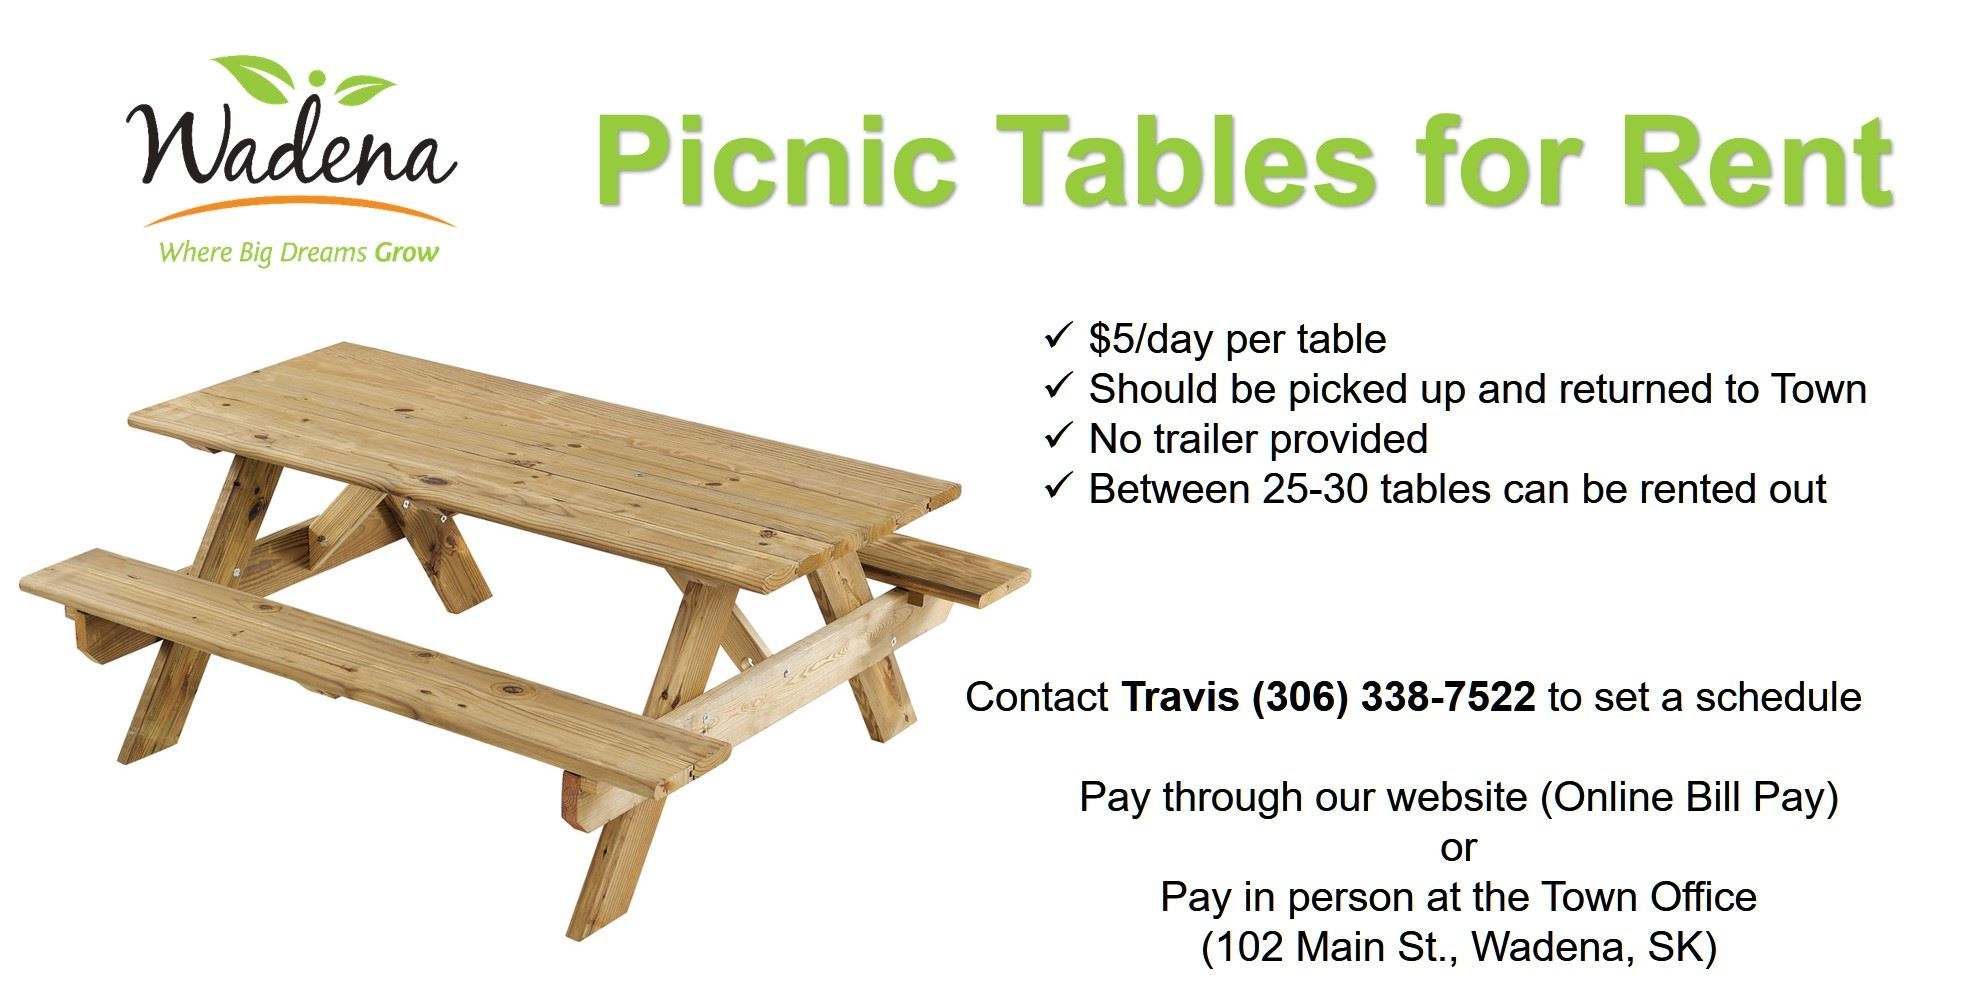 Picnic Tables for Rent Poster